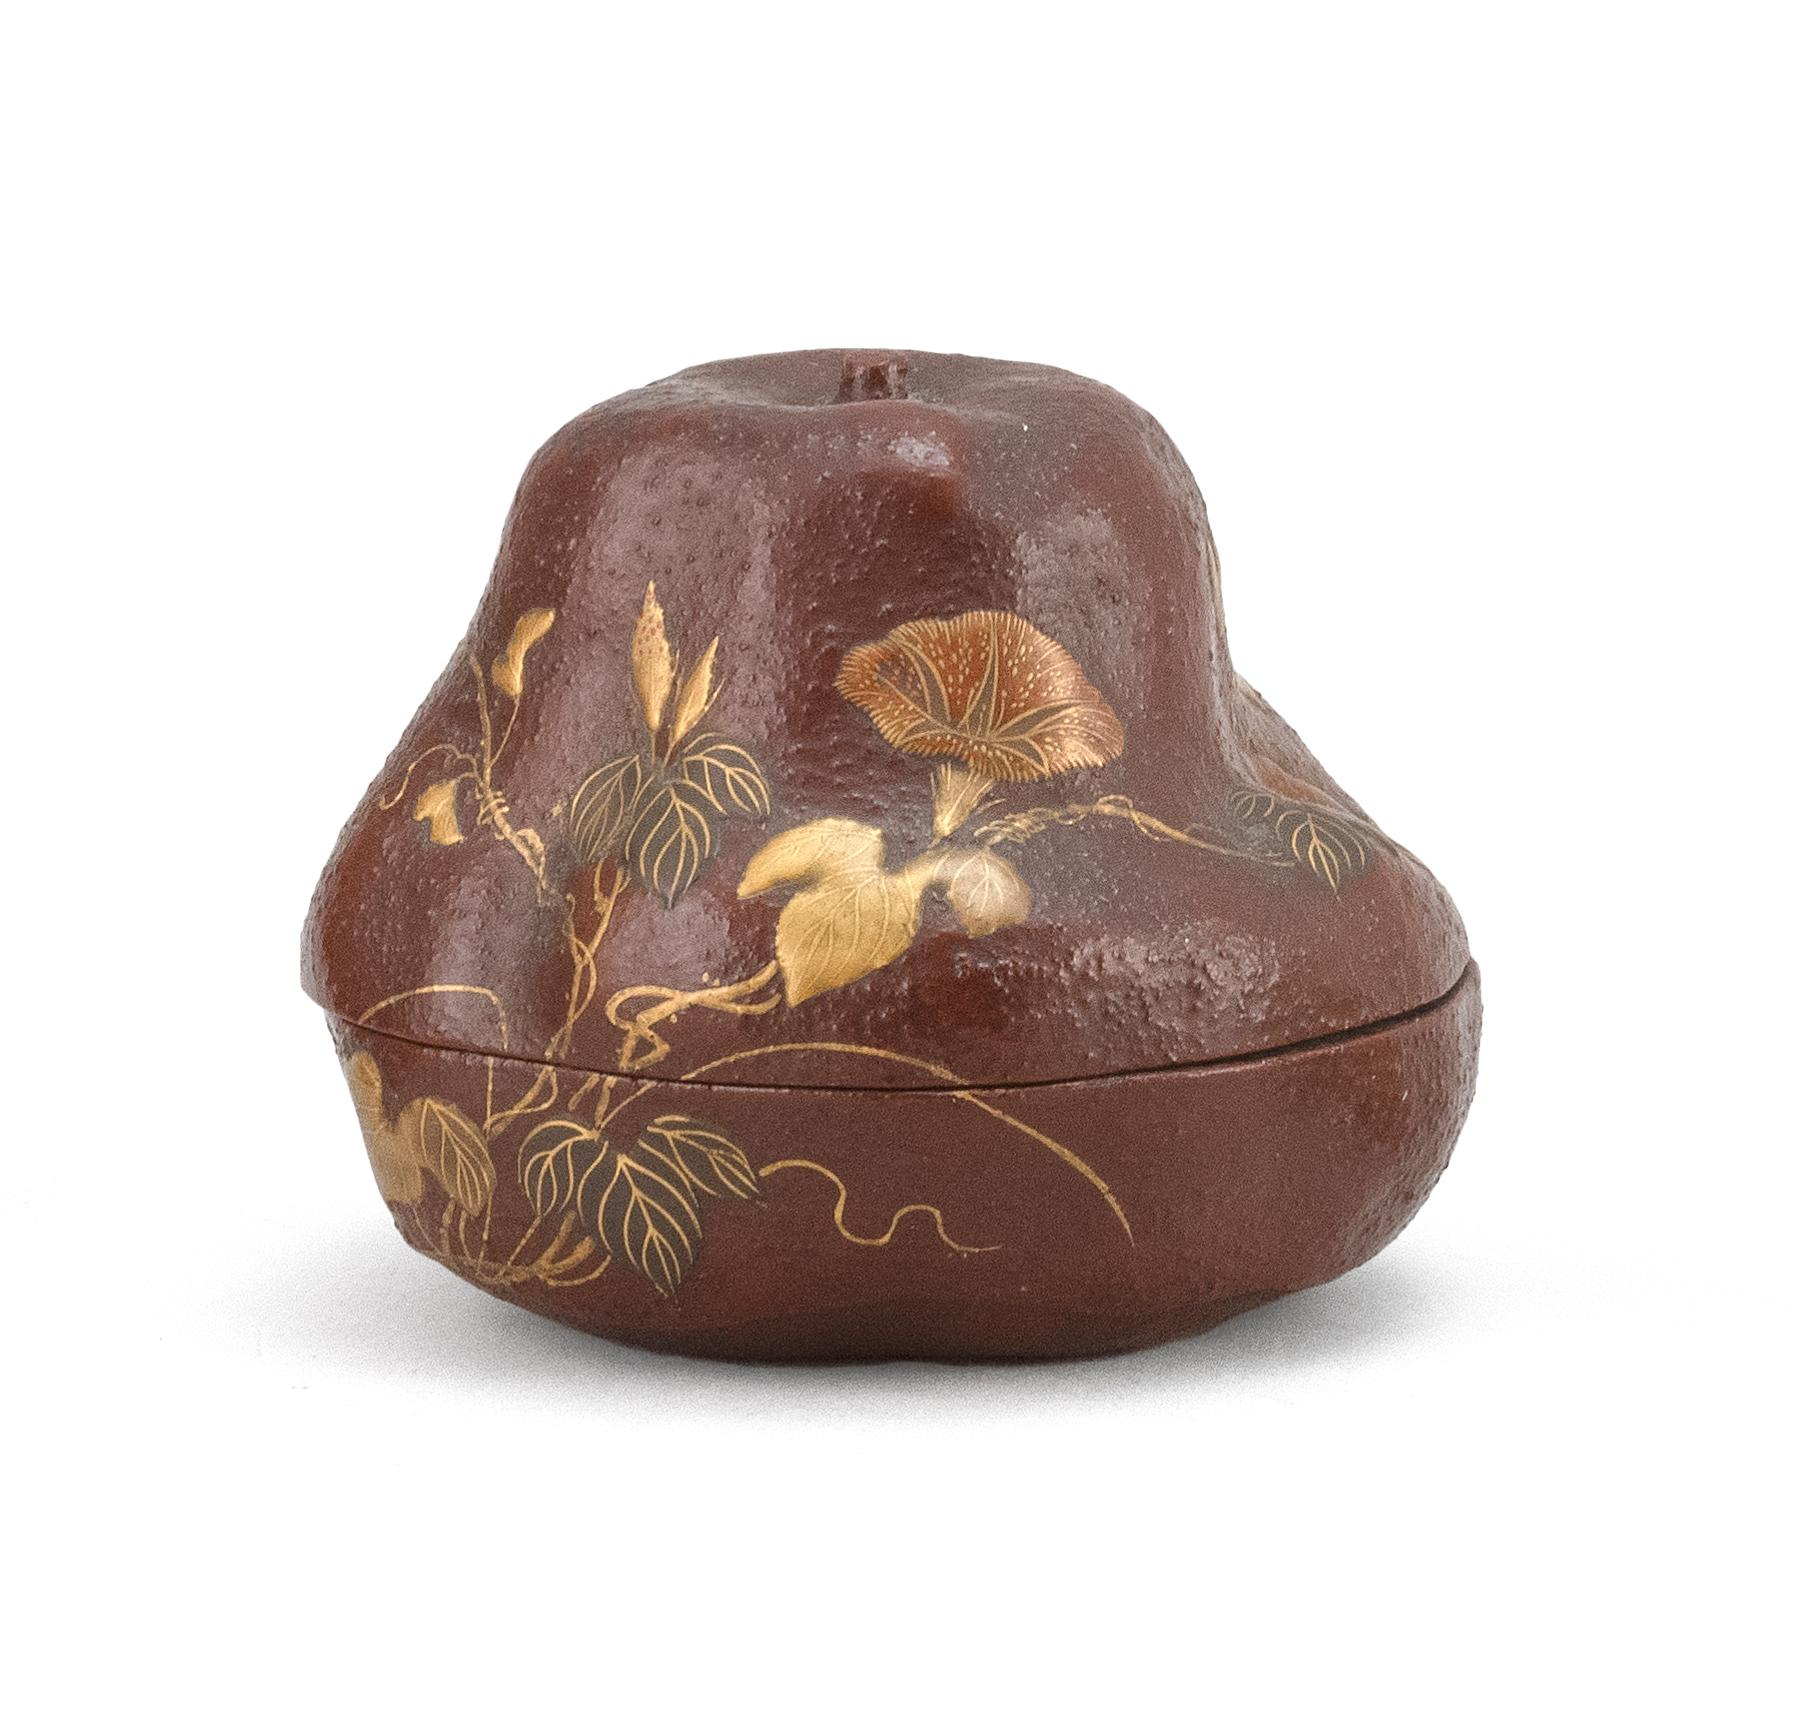 "JAPANESE LACQUER GOURD-FORM NATSUME With a gilt flowering vine on a textured brown ground. Signed. Height 2.5""."